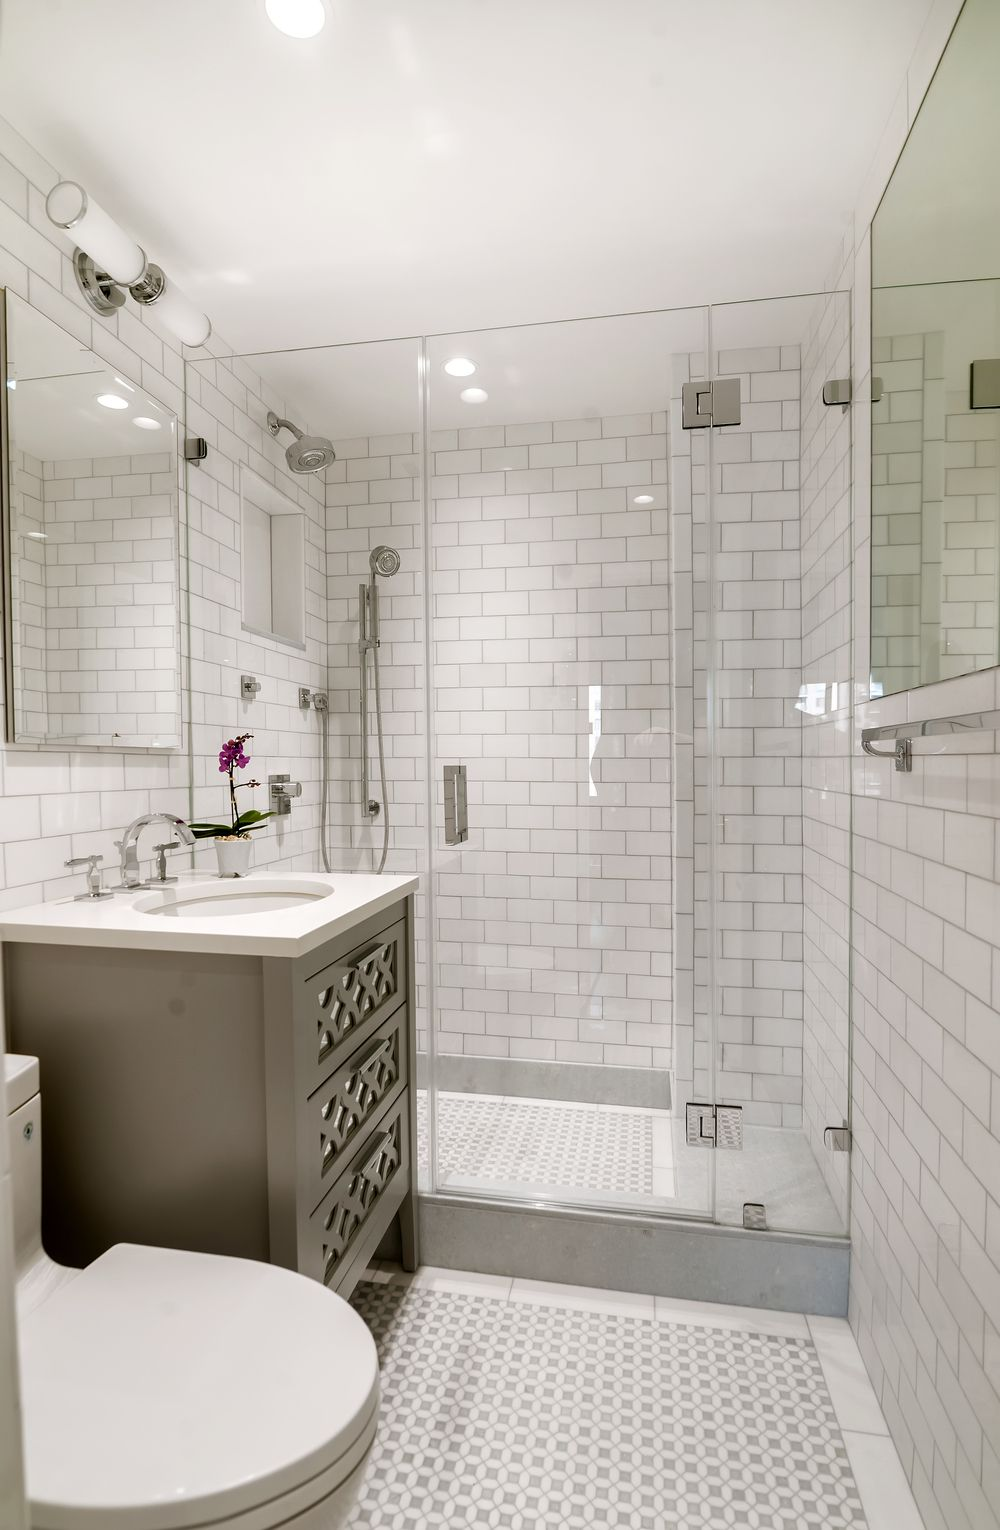 Before After Bathroom Remodel Cost Small Master Bathroom Bathroom Layout